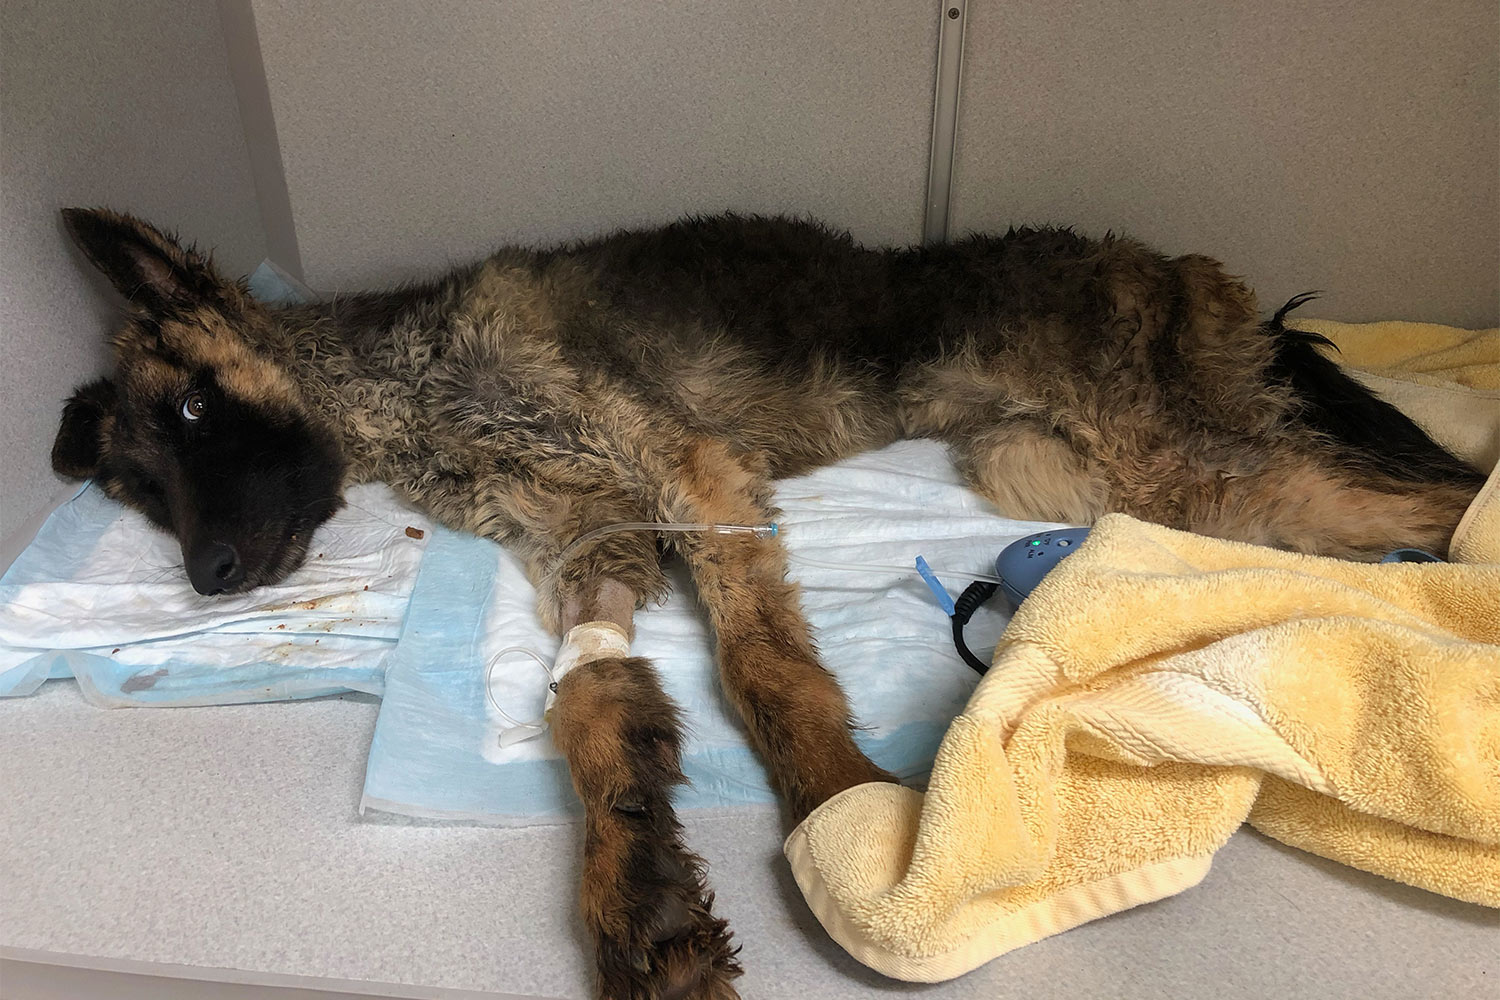 Emaciated Dog in Trash Recovering